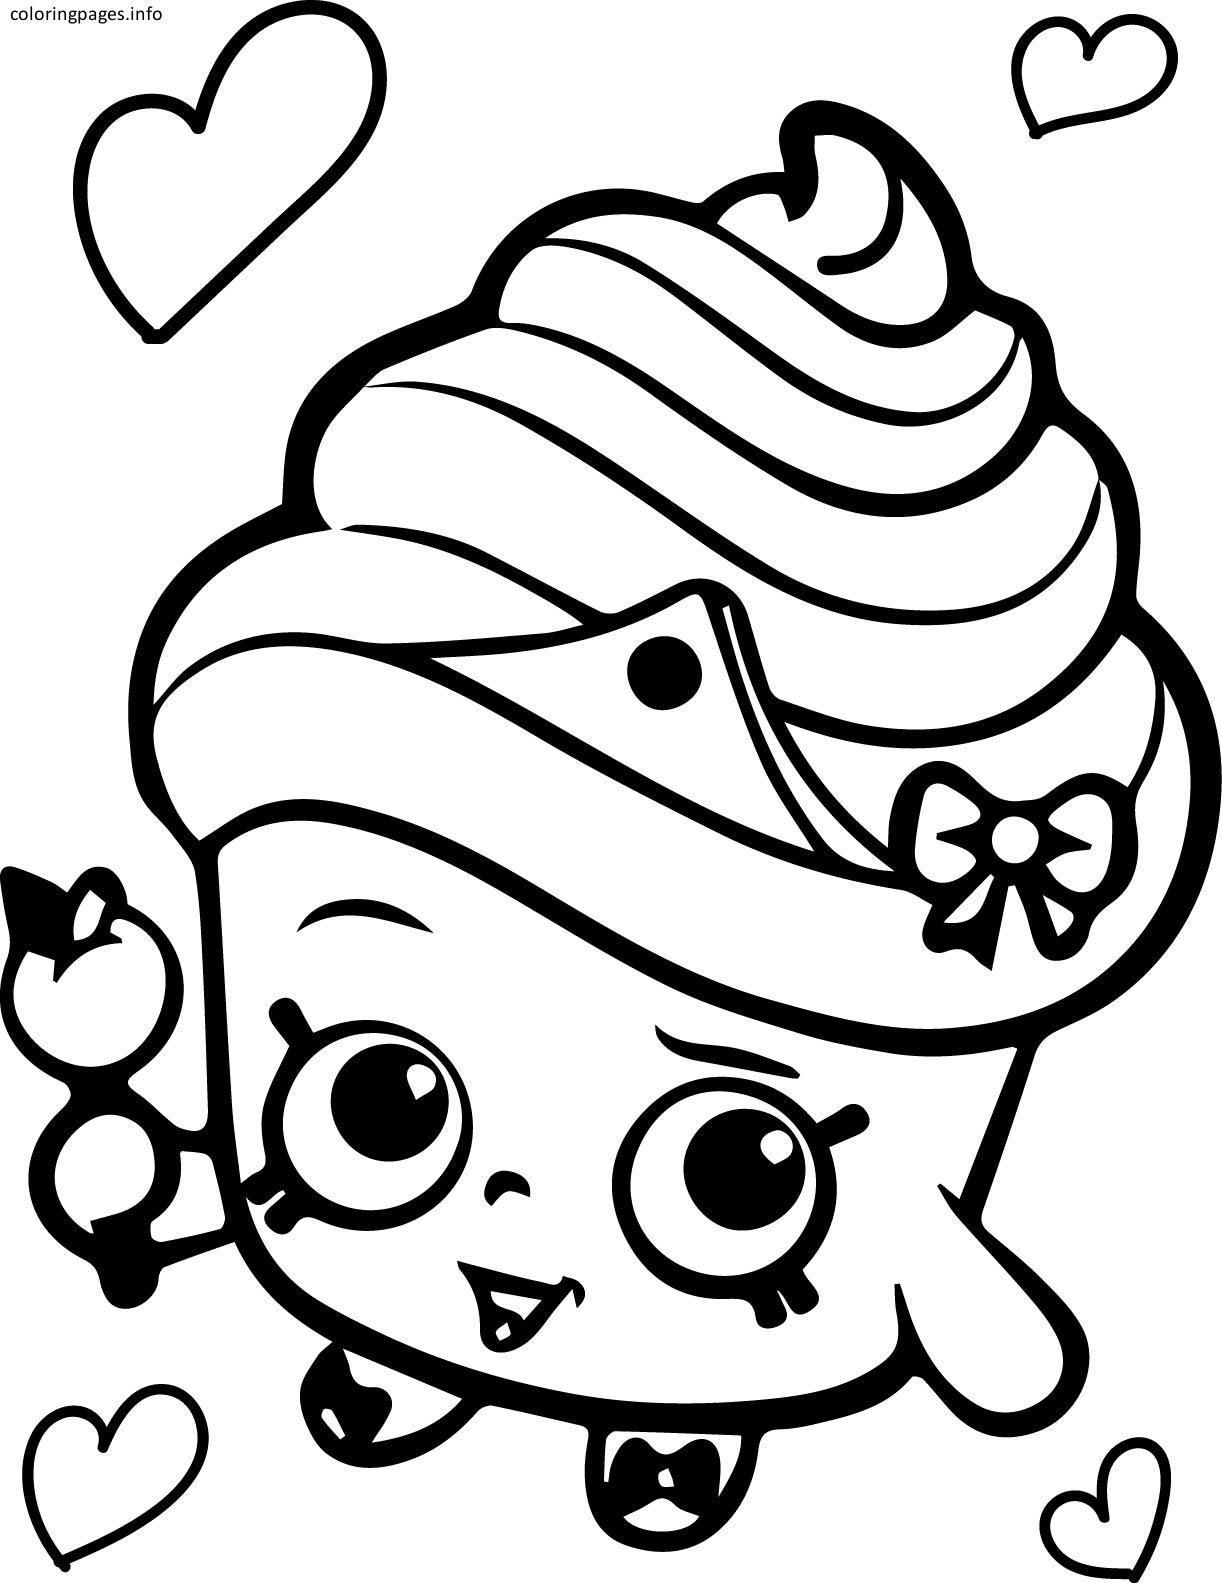 Shopkins Coloring Pages Cupcake Queen Shopkins colouring